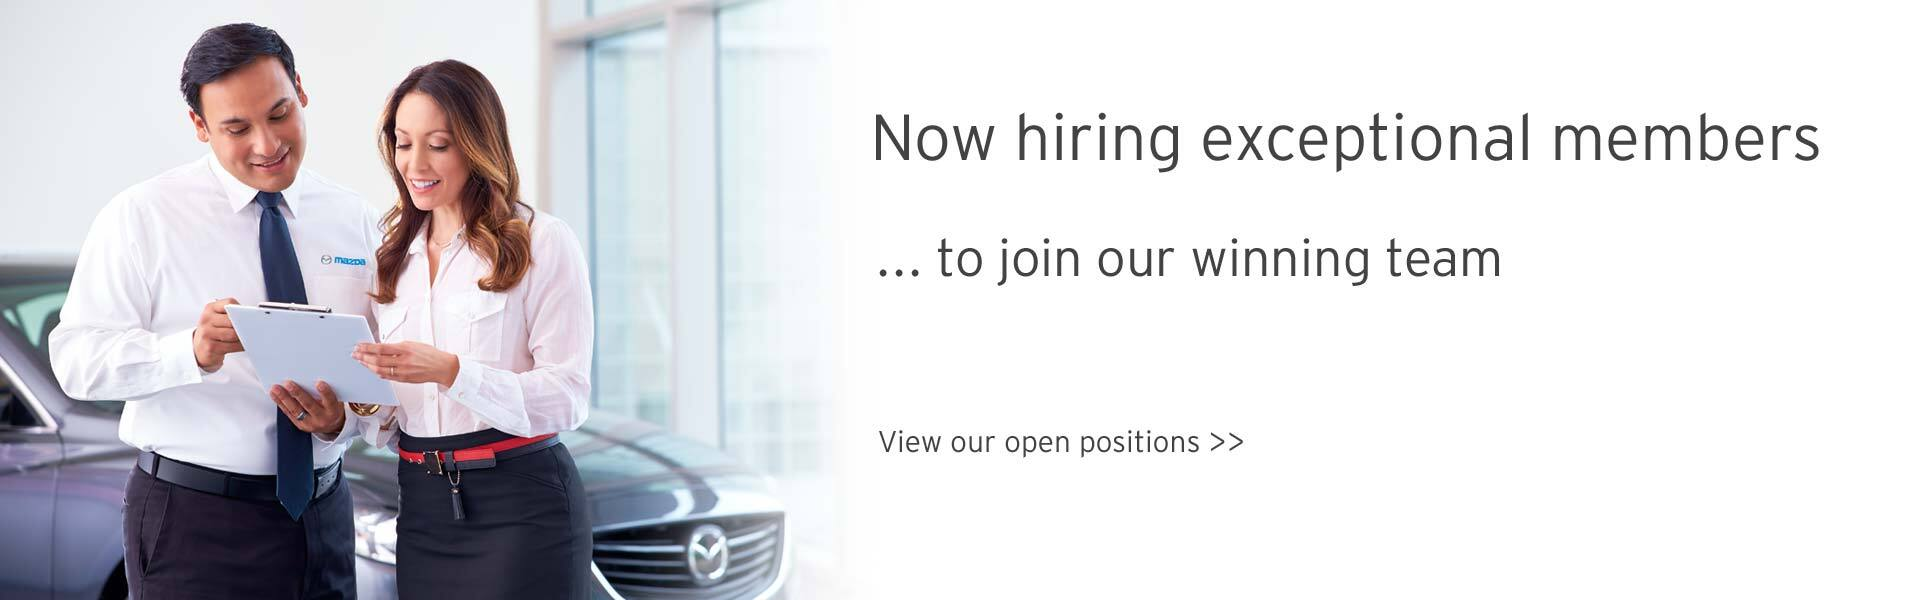 Jobs at Mazda of Mesquite - join our winning team